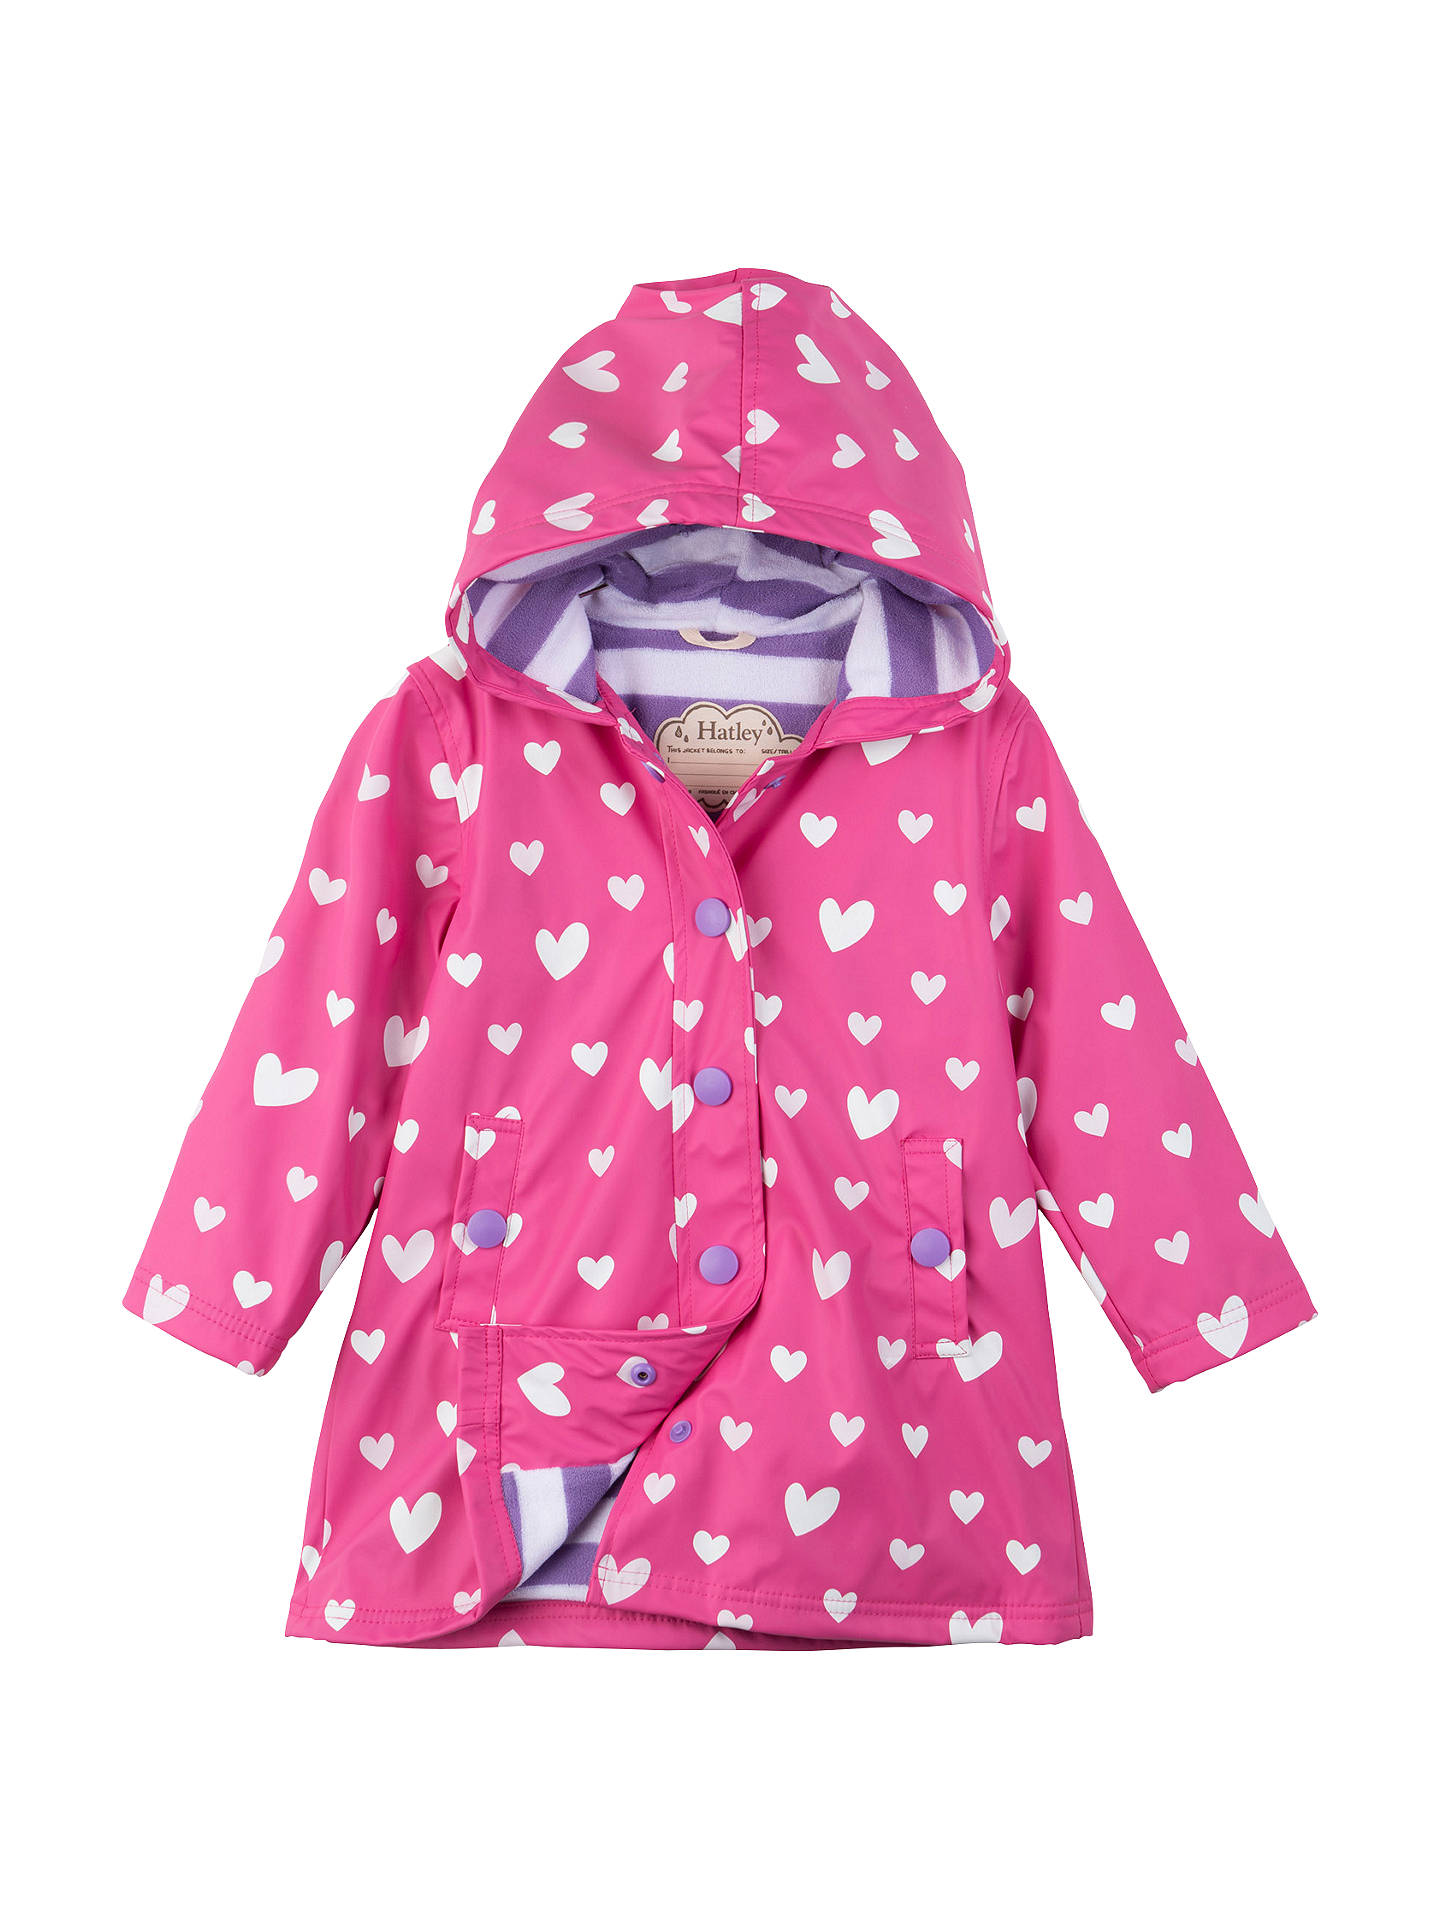 263fa0fa5 Buy Hatley Girls' Colour Changing Floating Heart Splash Jacket, Pink, 2  years Online ...